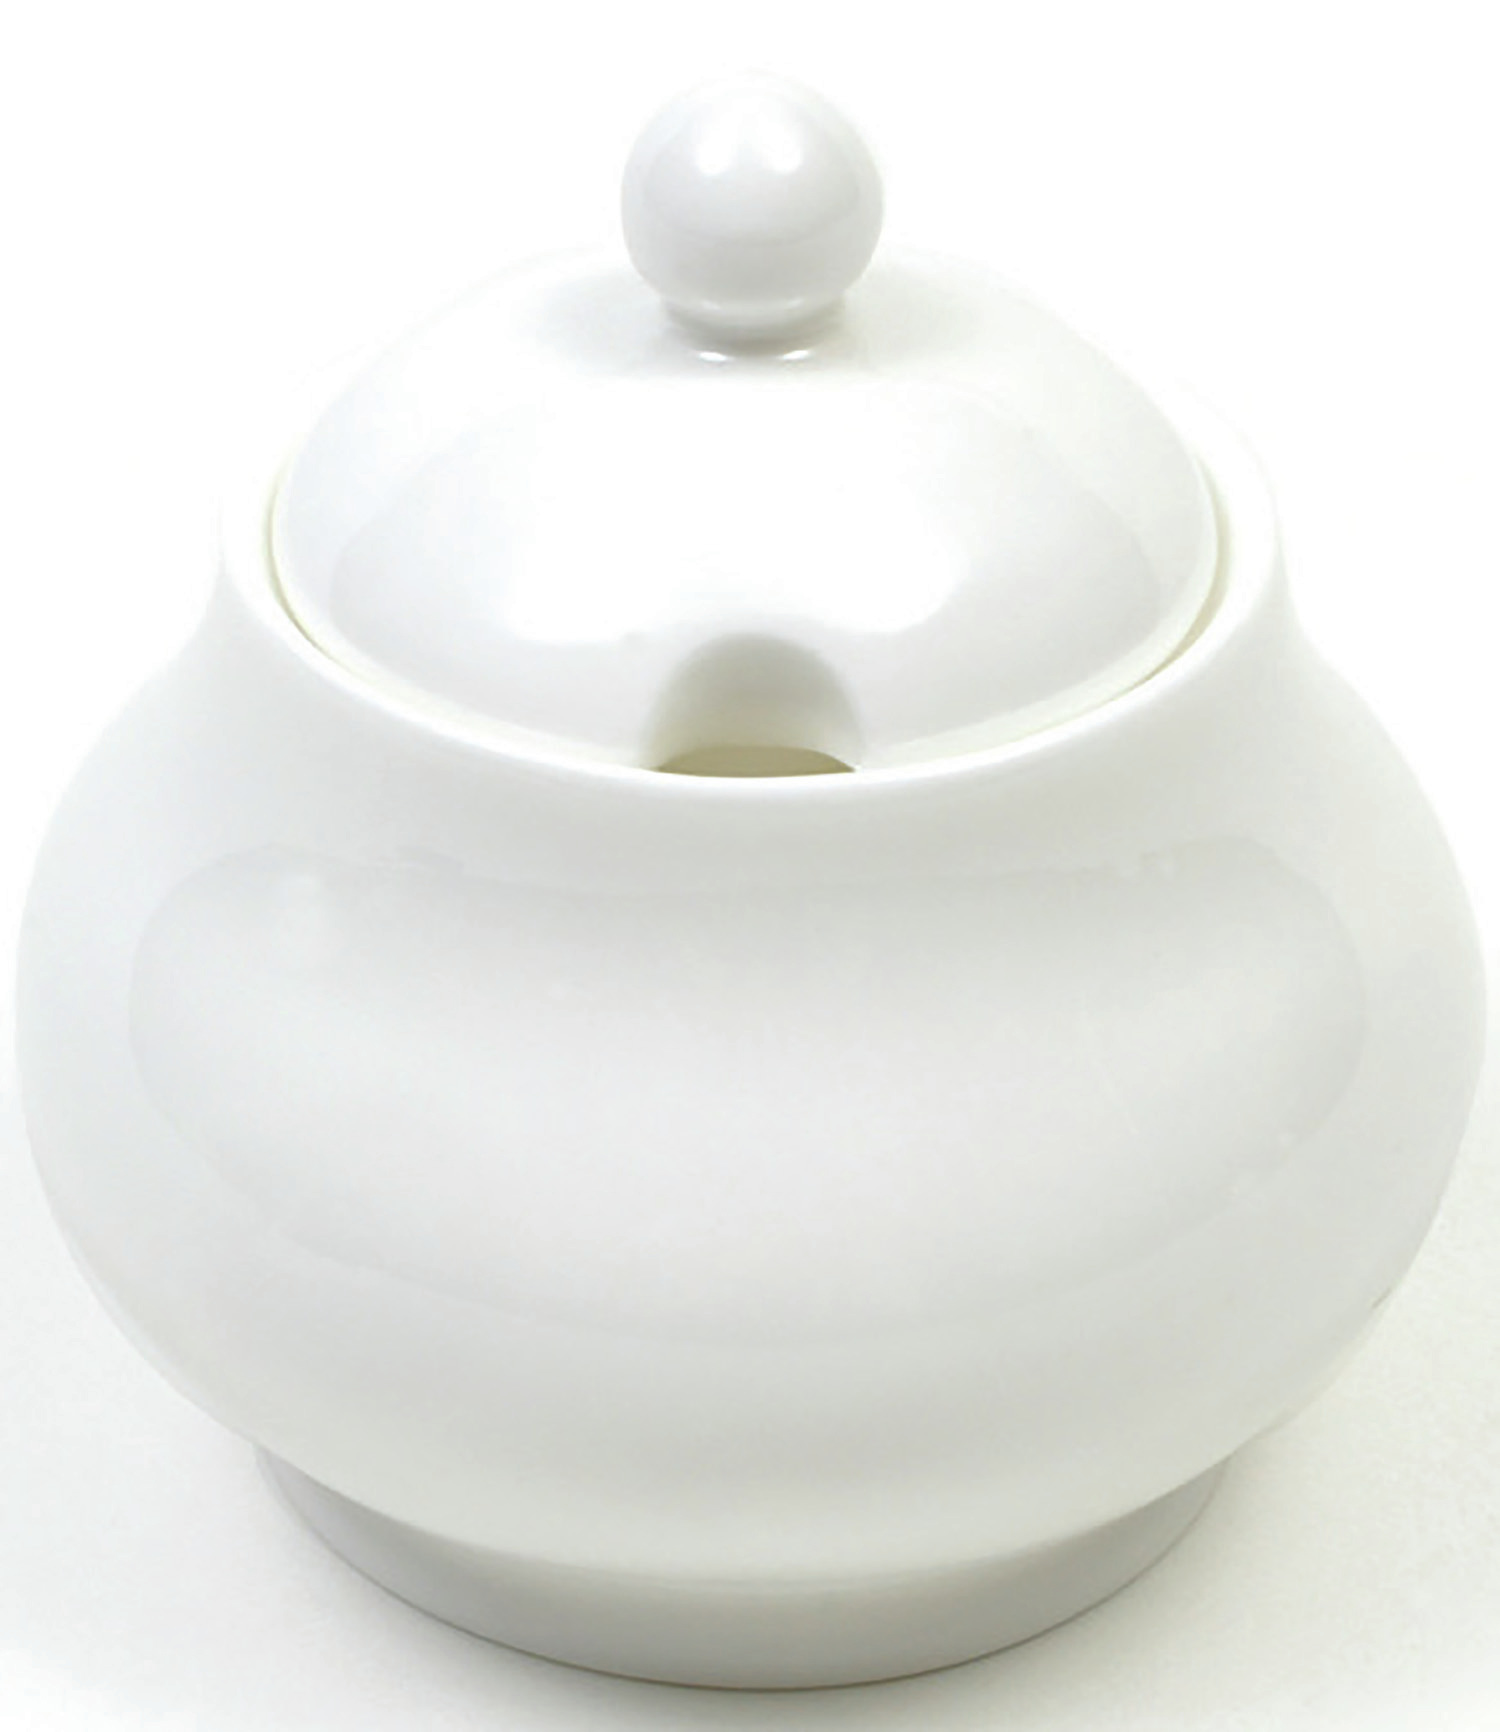 Maxwell & Williams Cashmere Sugar Bowl